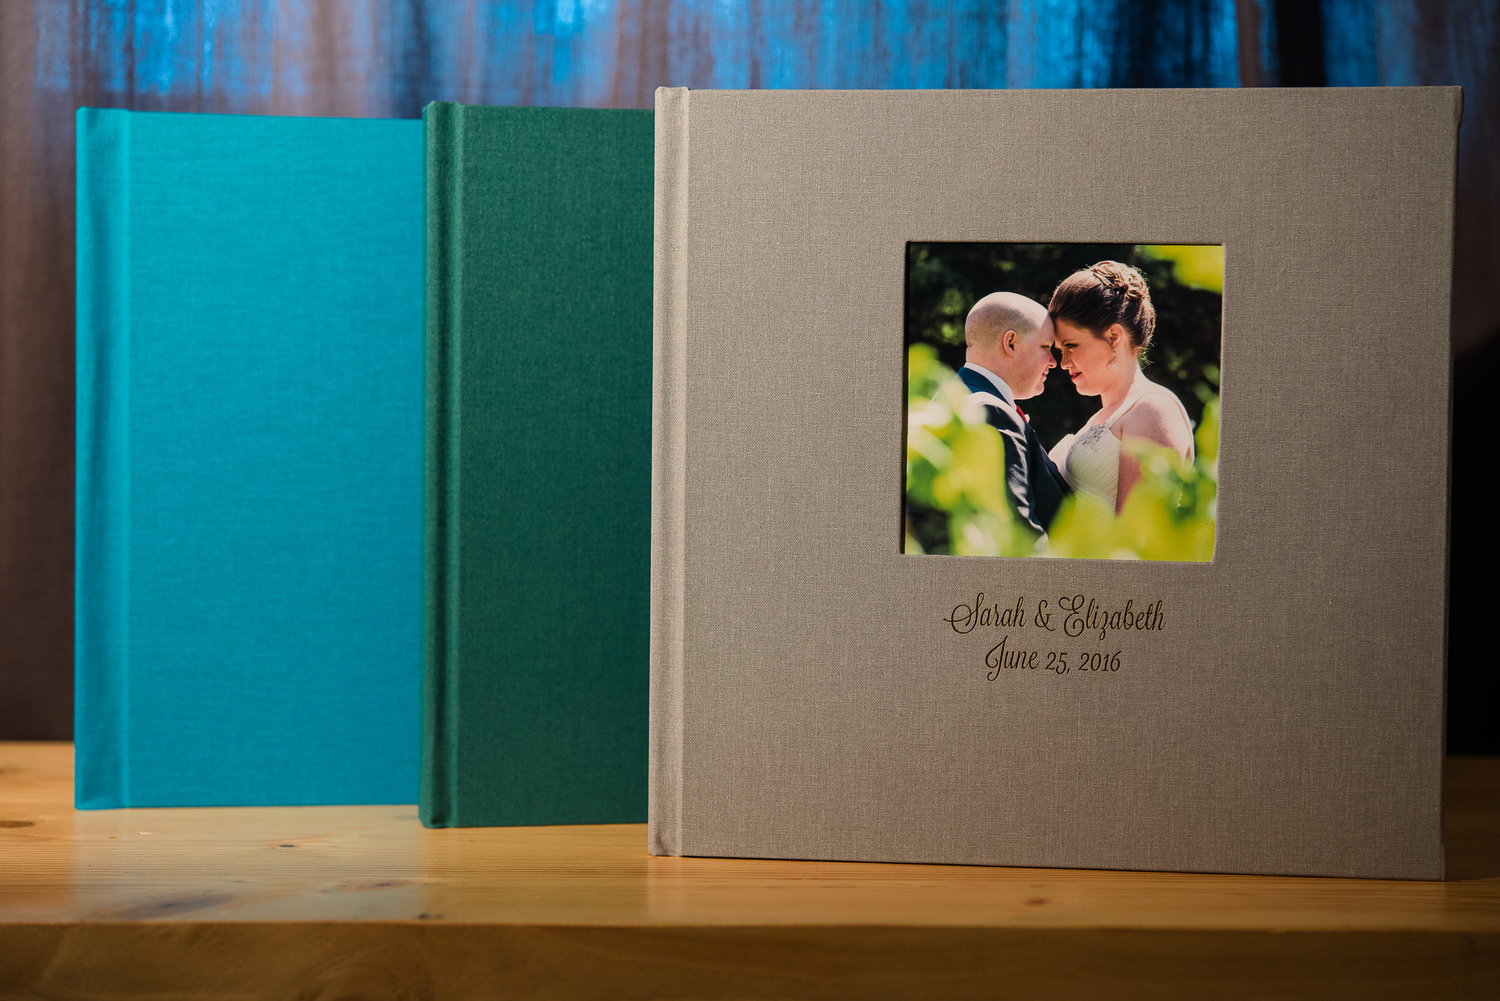 wedding album prices and details for seattle wedding photographer